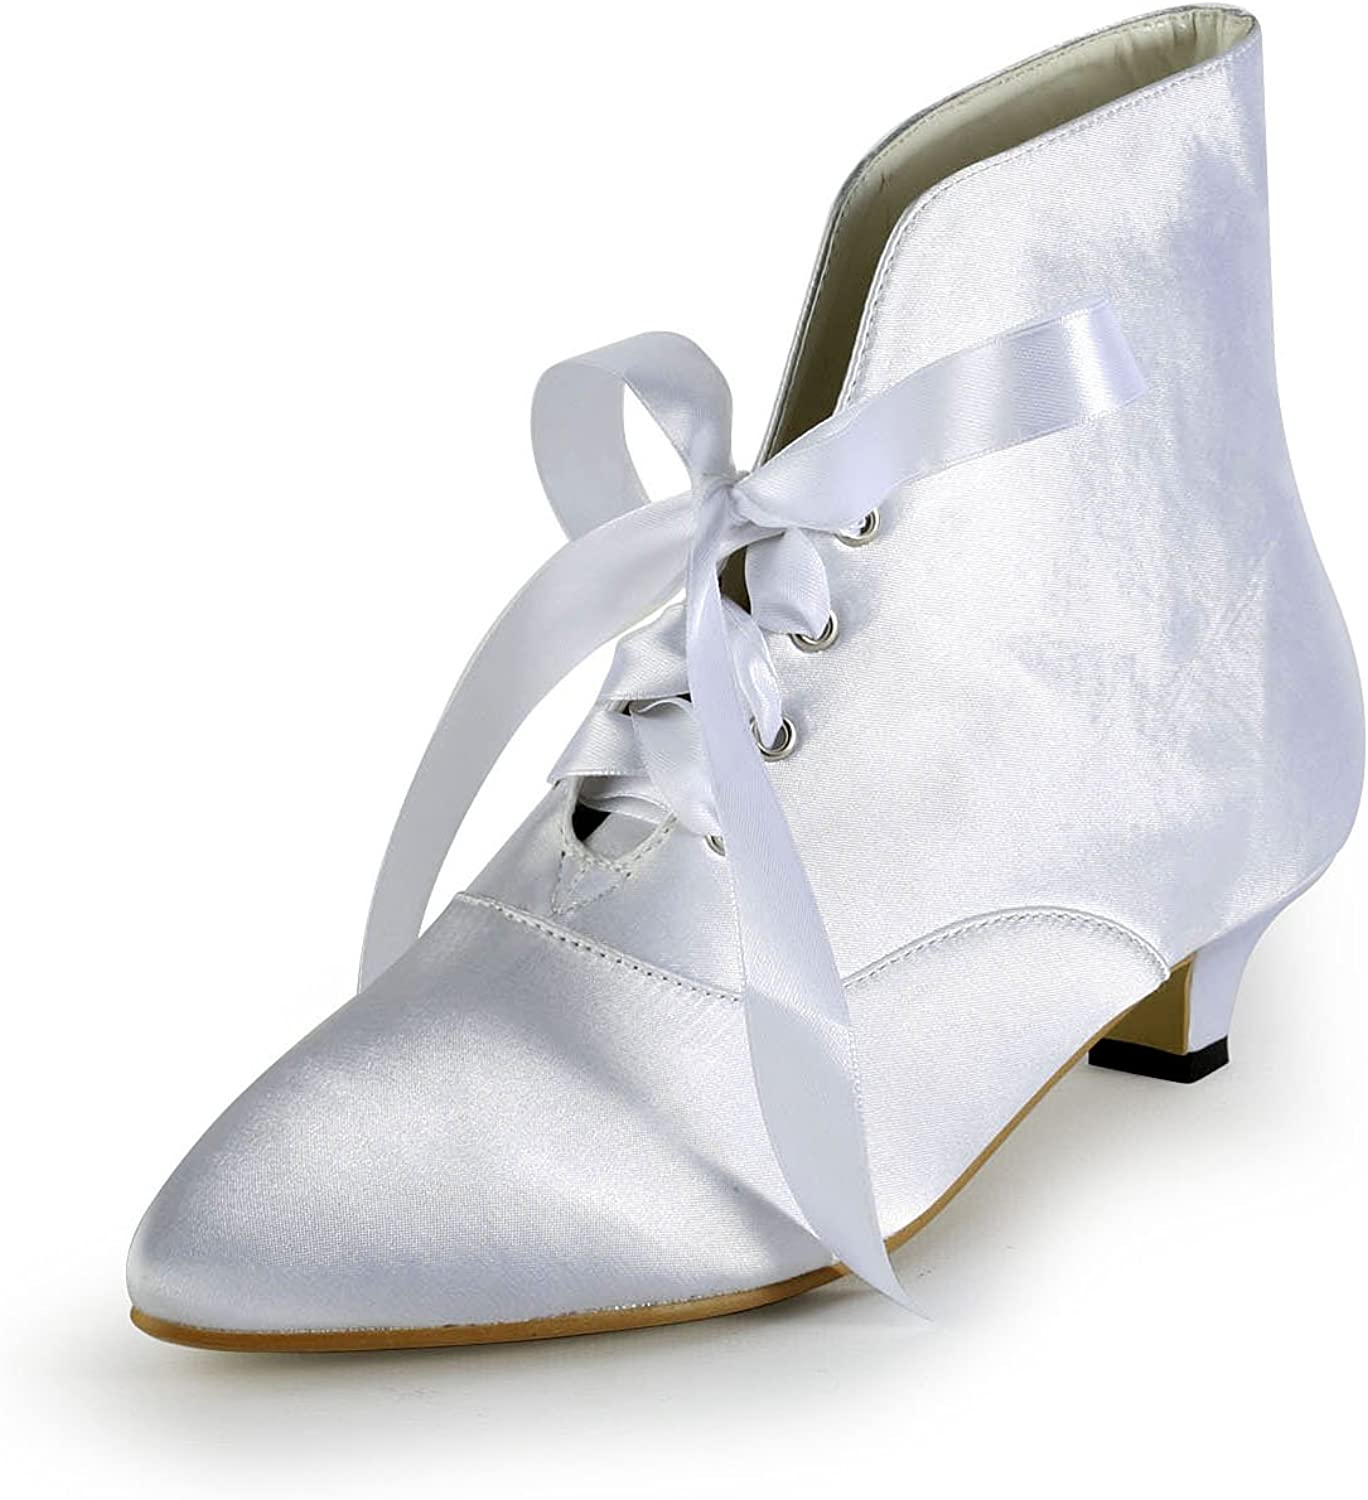 TDA TH12124 Womens Kitten Heel Satin Lace-up Evening Parting Bridal Wedding Dress Ankle Boots